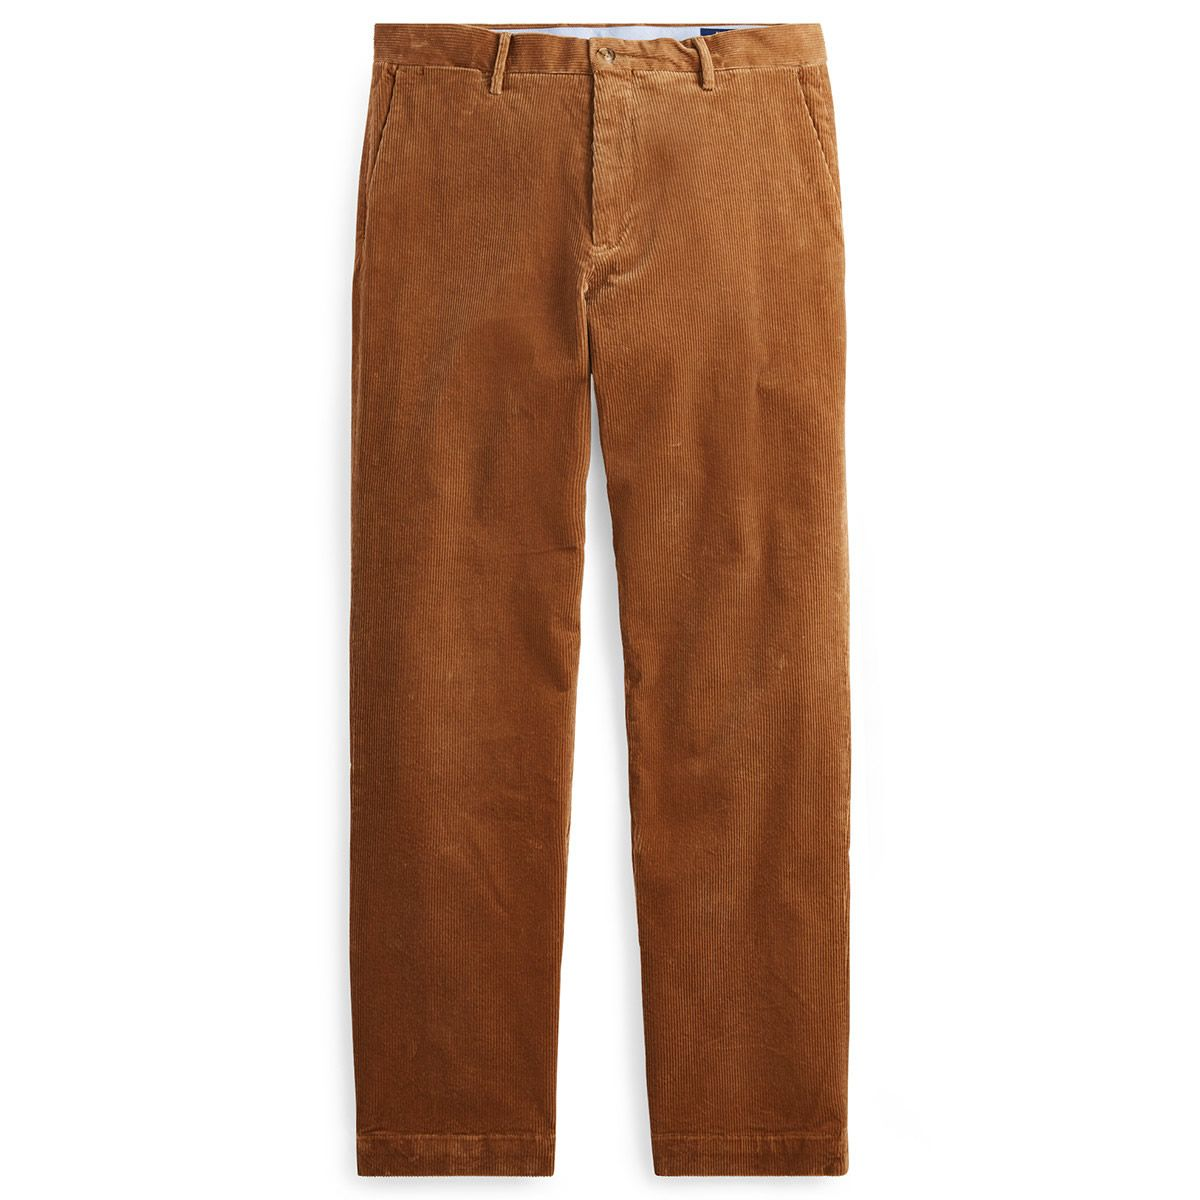 f79b9b88 Polo Ralph Lauren Men's Pants - Macy's